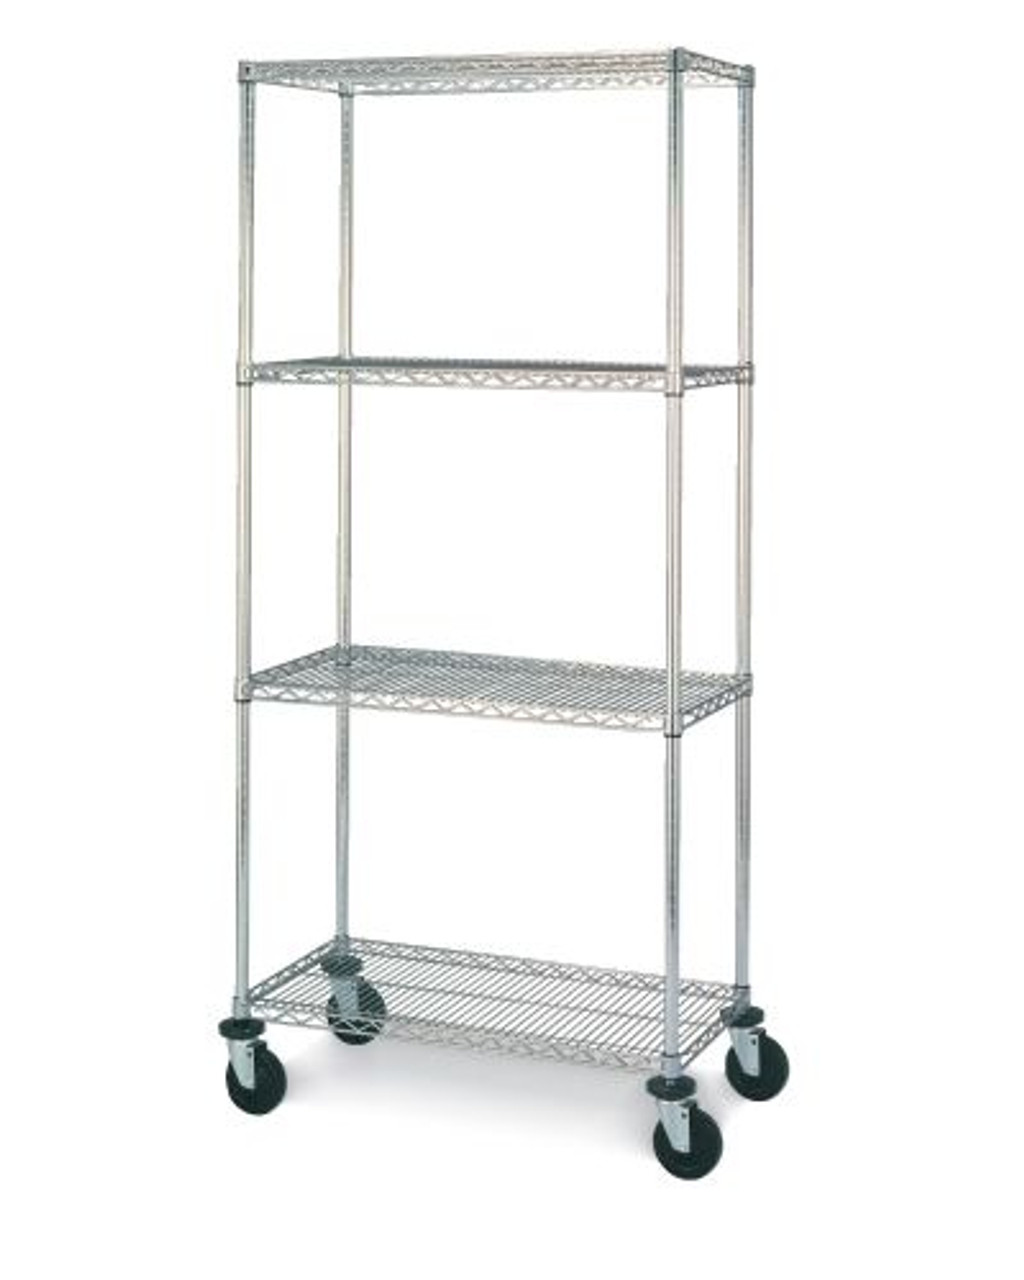 "Olympic 24"" Deep 4 Shelf Mobile Carts - Chrome - 24"" x 24"" x 59"" MJ2424-54UC"